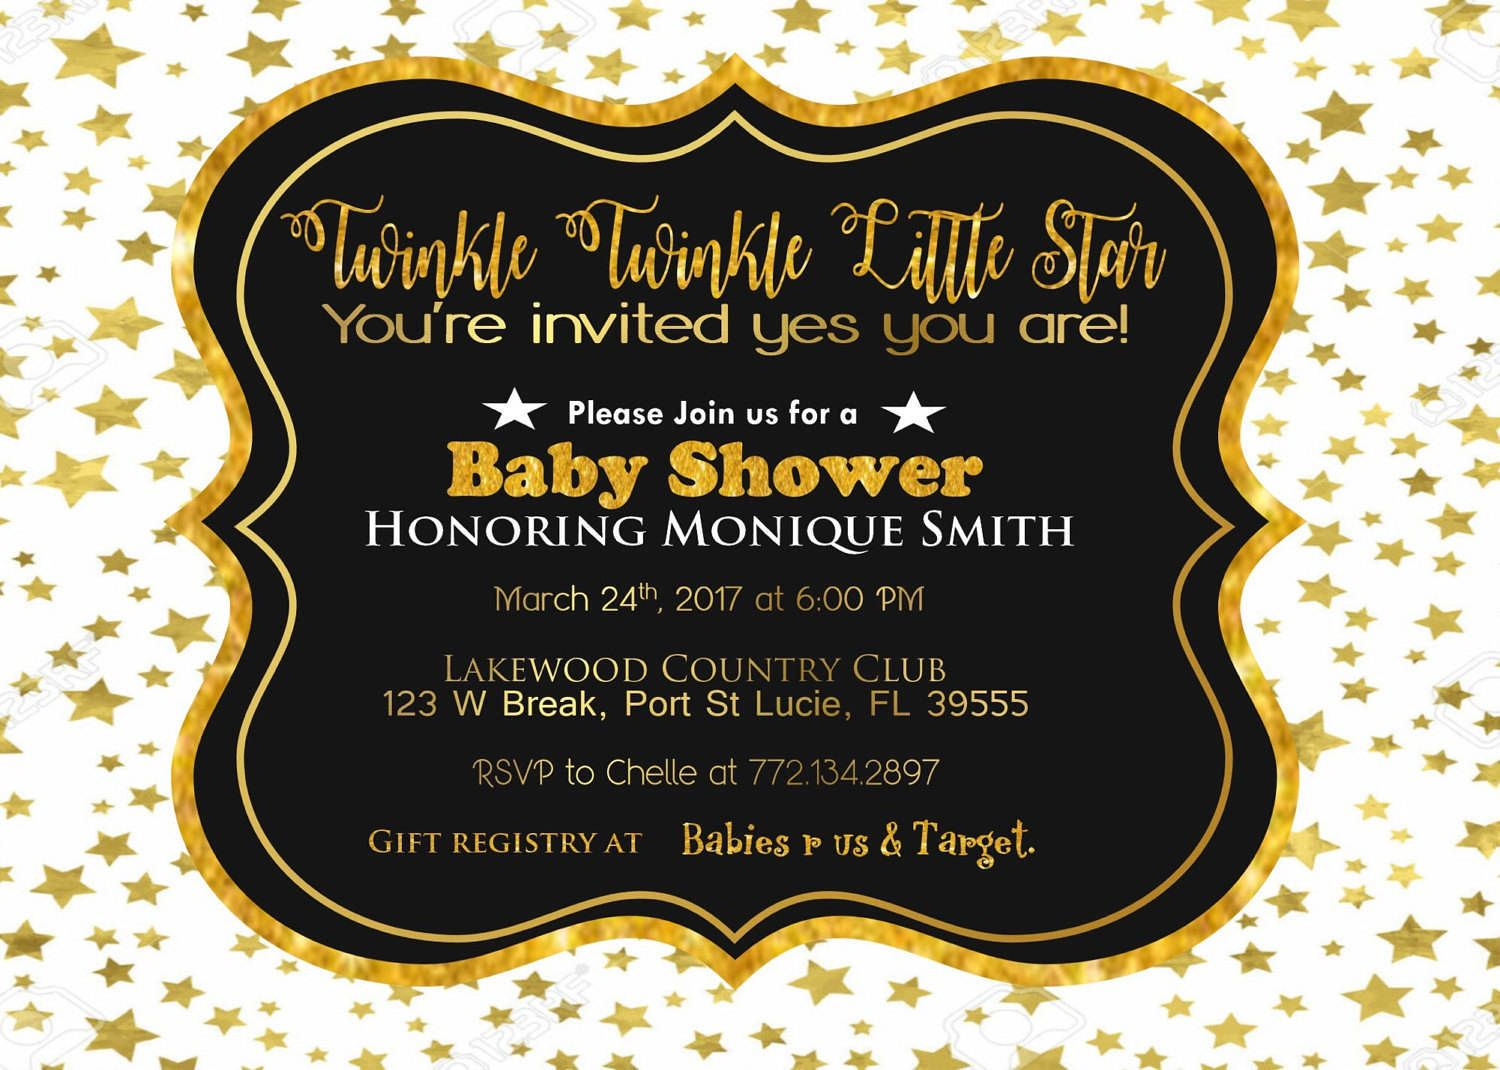 Gold color cardstock paper 5x7 - Black White And Gold Twinkle Twinkle Little Star Baby Shower Invitation 25